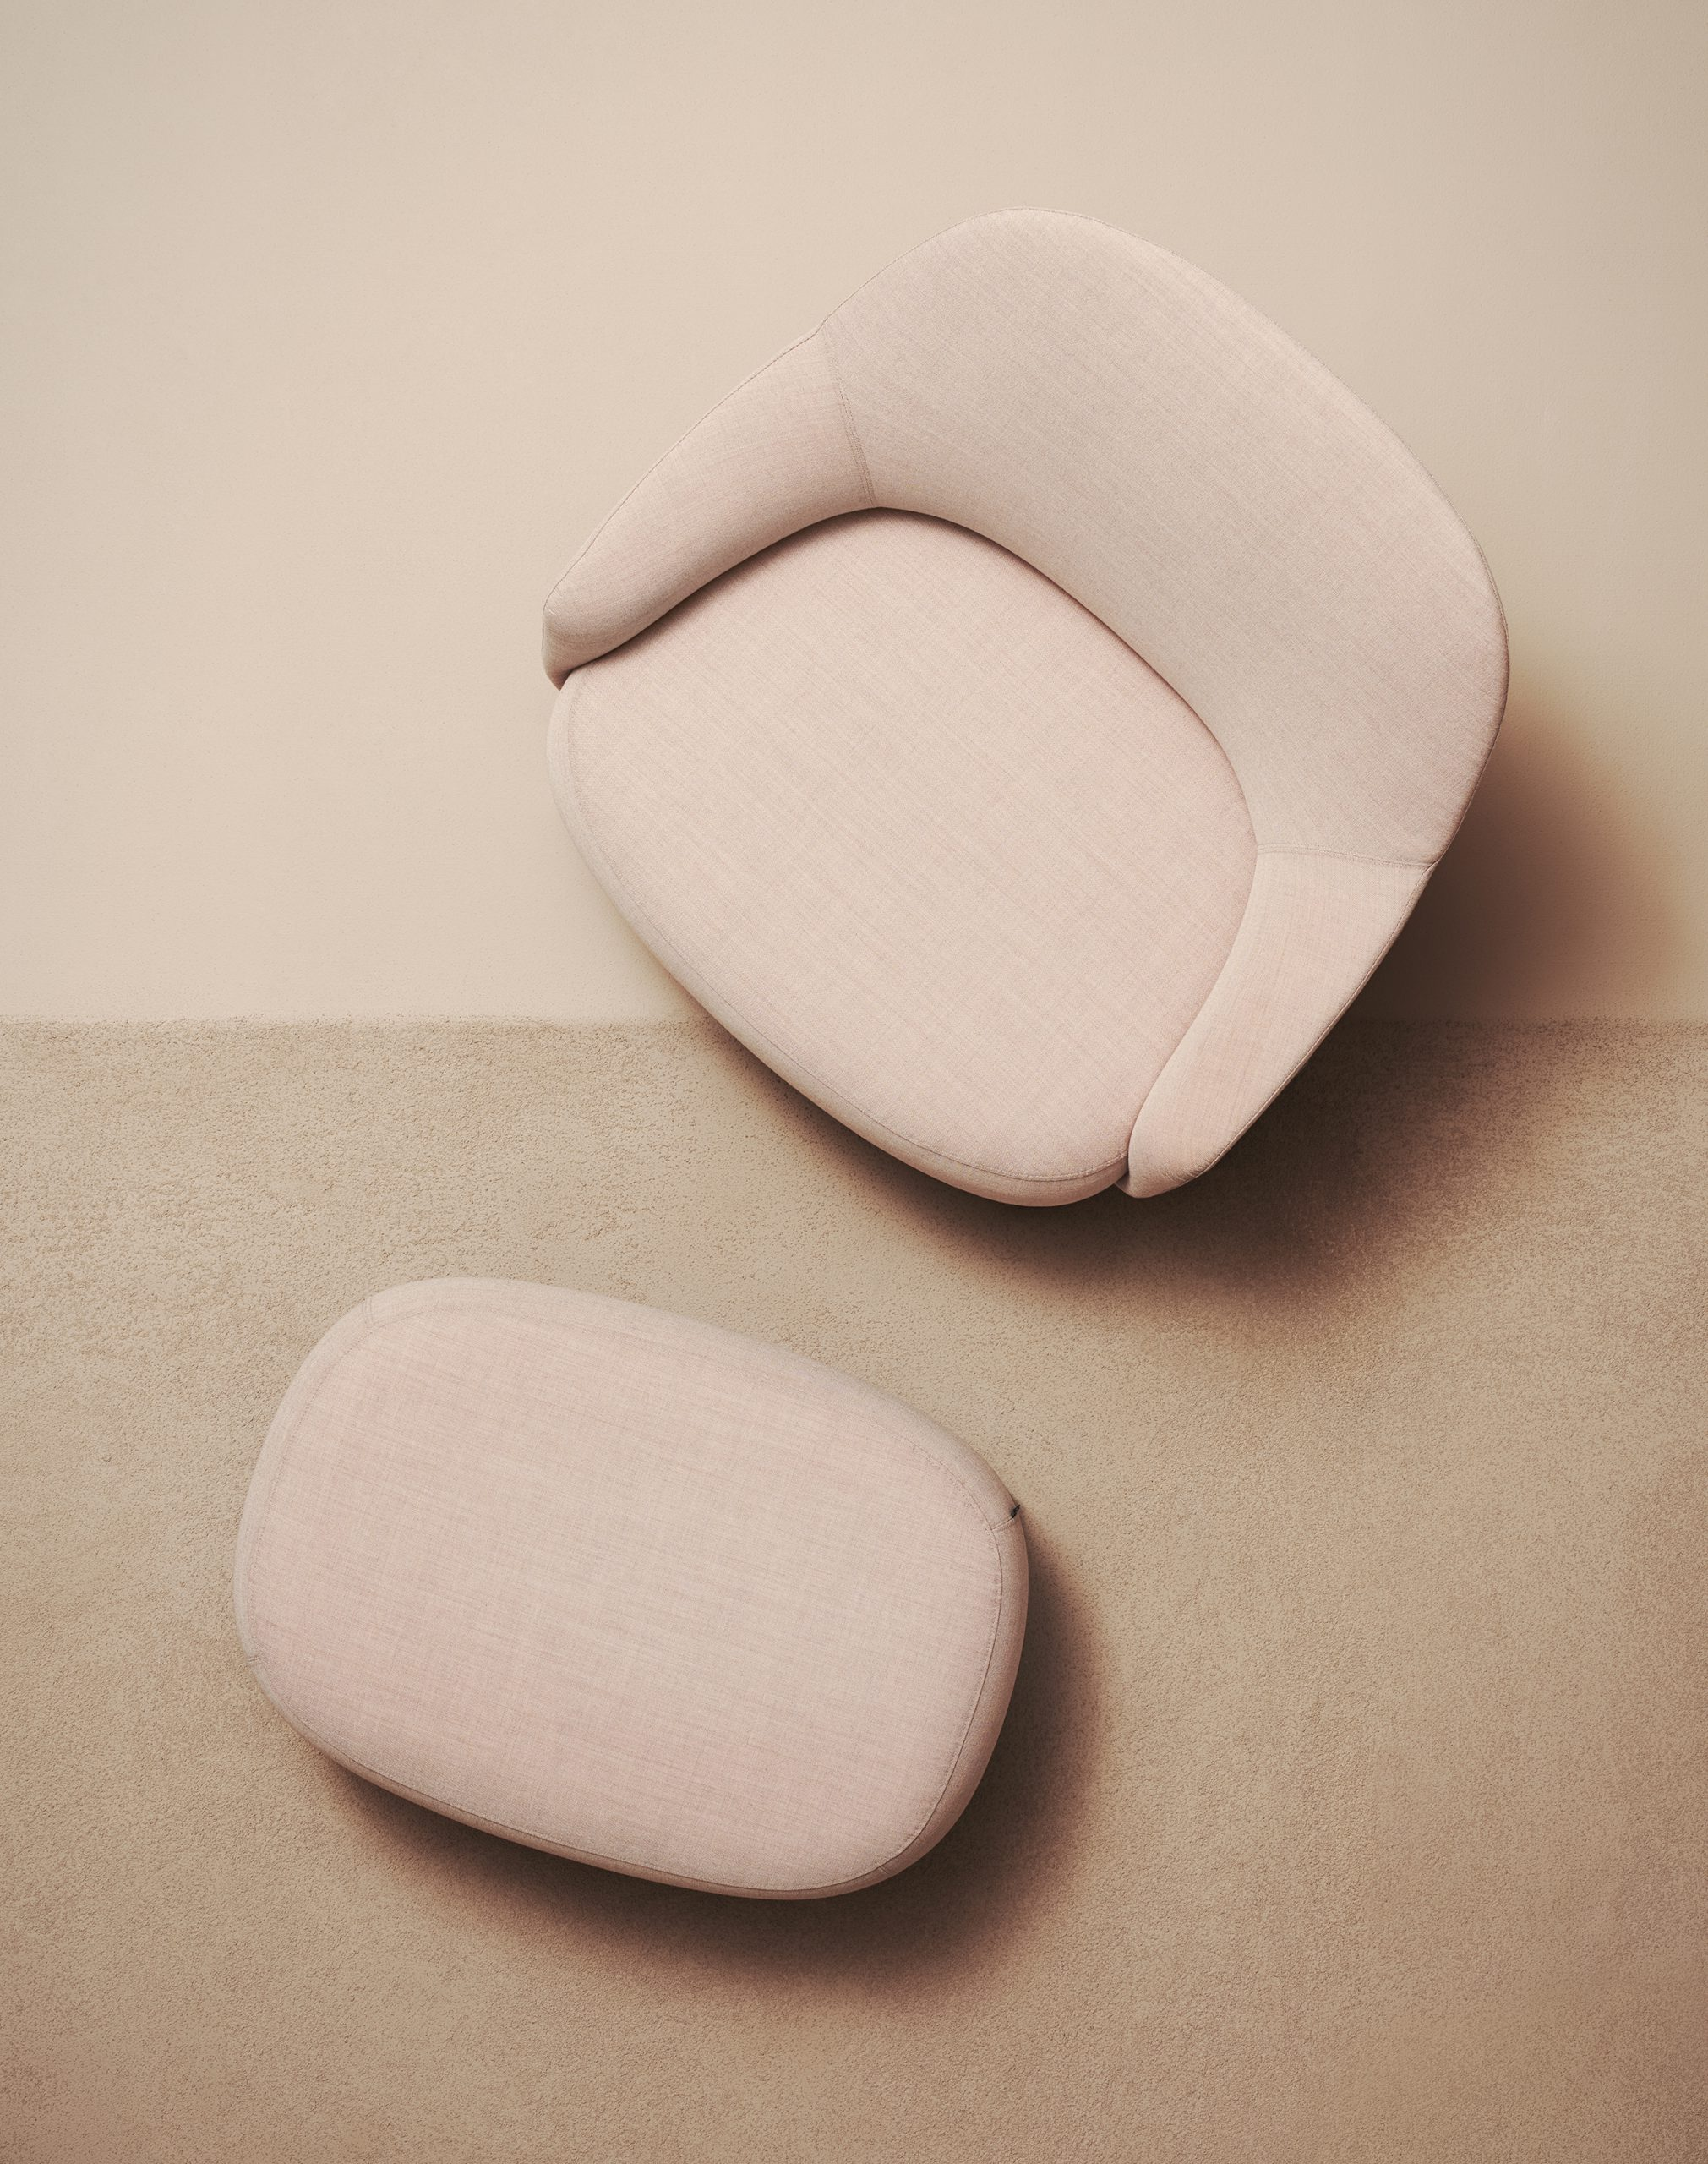 Top view of Shift easychair classic and ottoman by Debiasi Sandri for Offecct